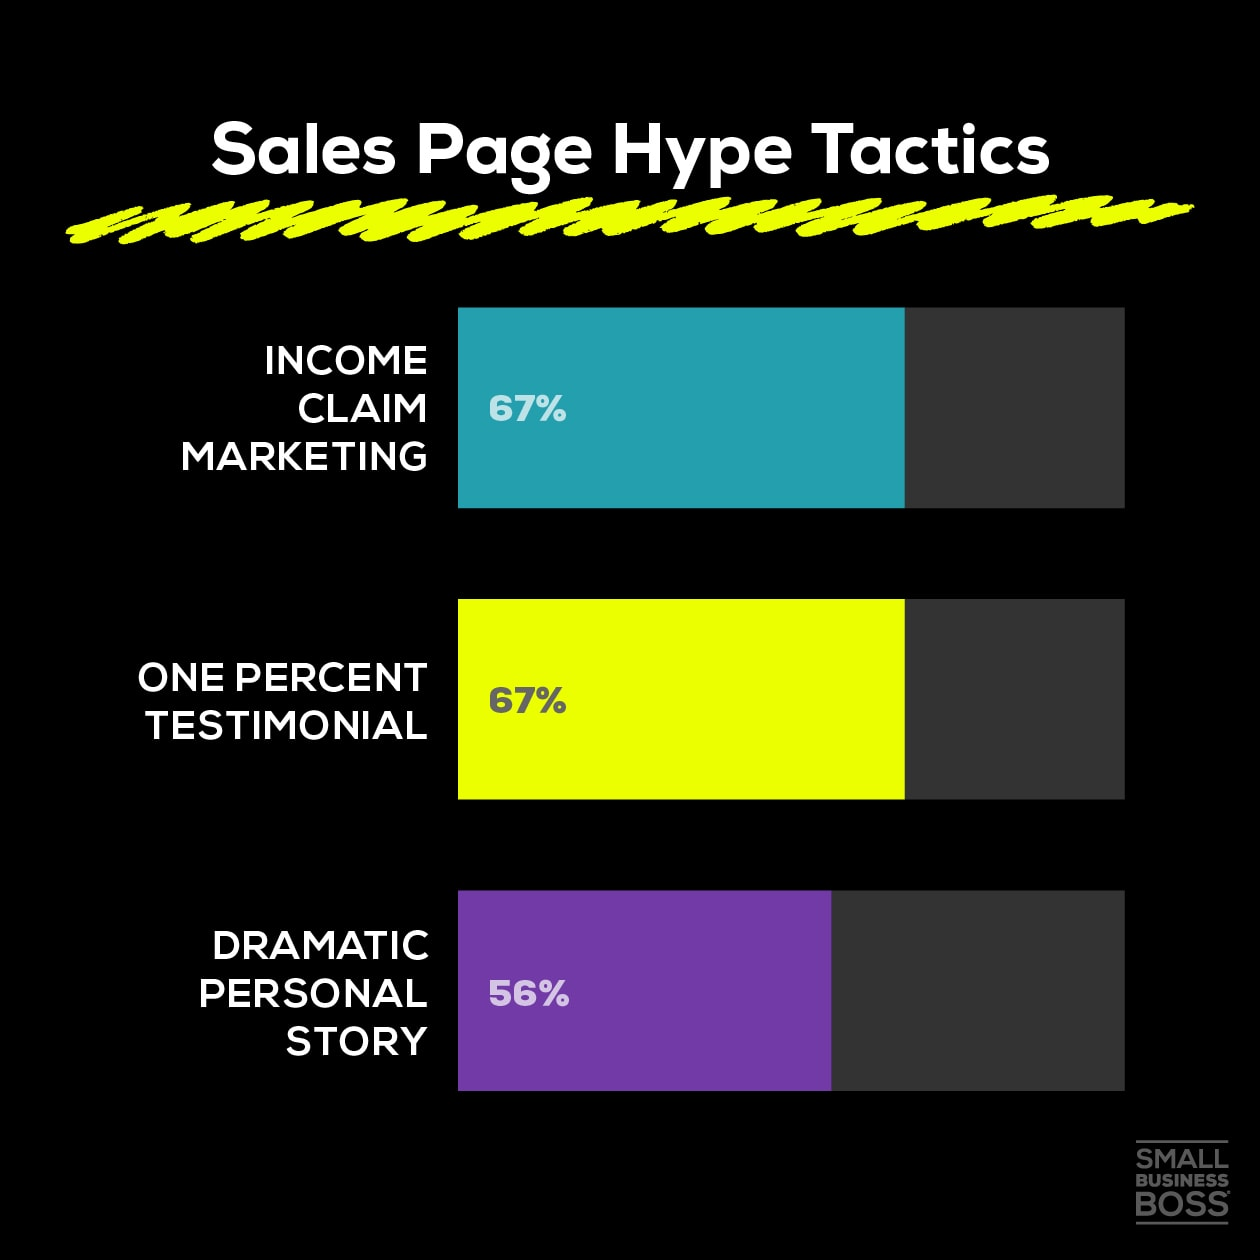 Sales Page Hype Tactics